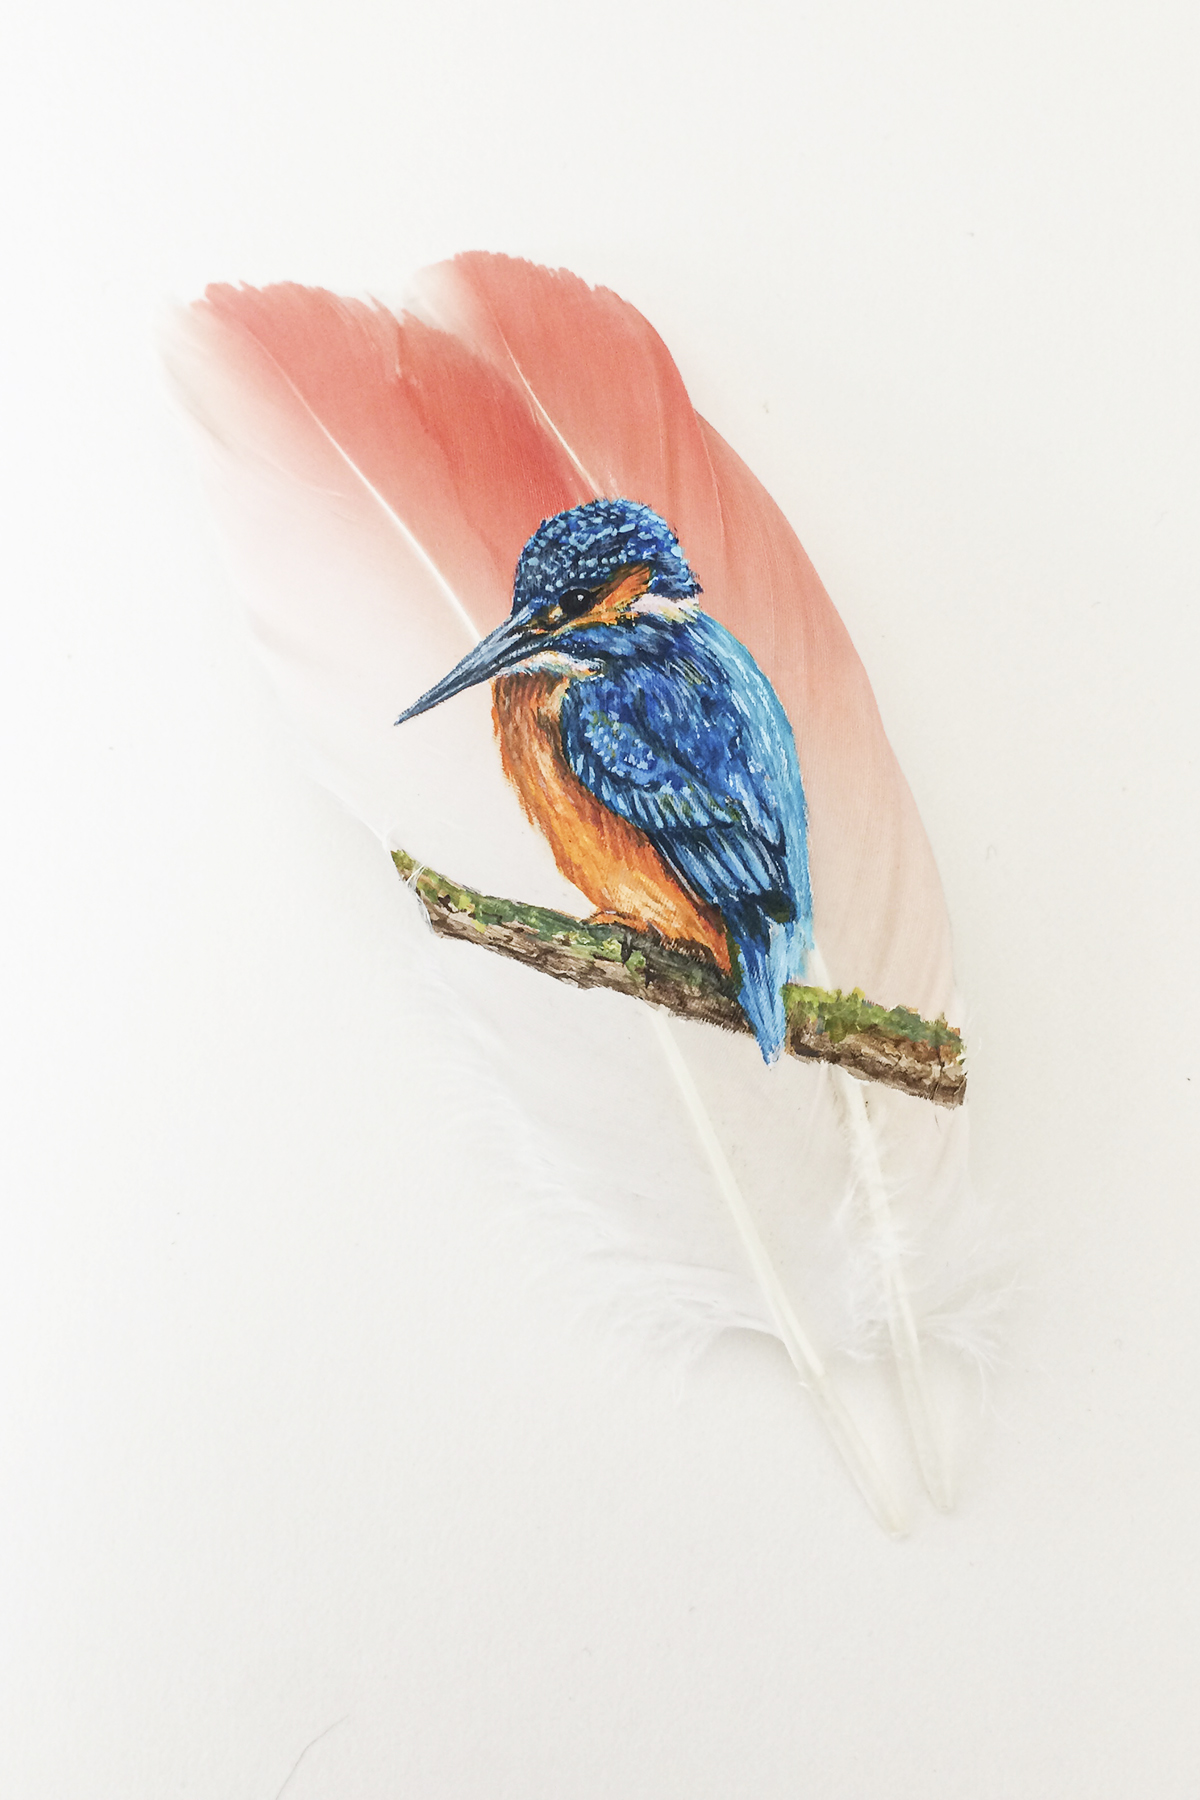 "Fishing At Sunset By Mandi Baykaa-Murray - (Kingfisher on Flamingo Feathers) - 6"" x 8"" - £325"